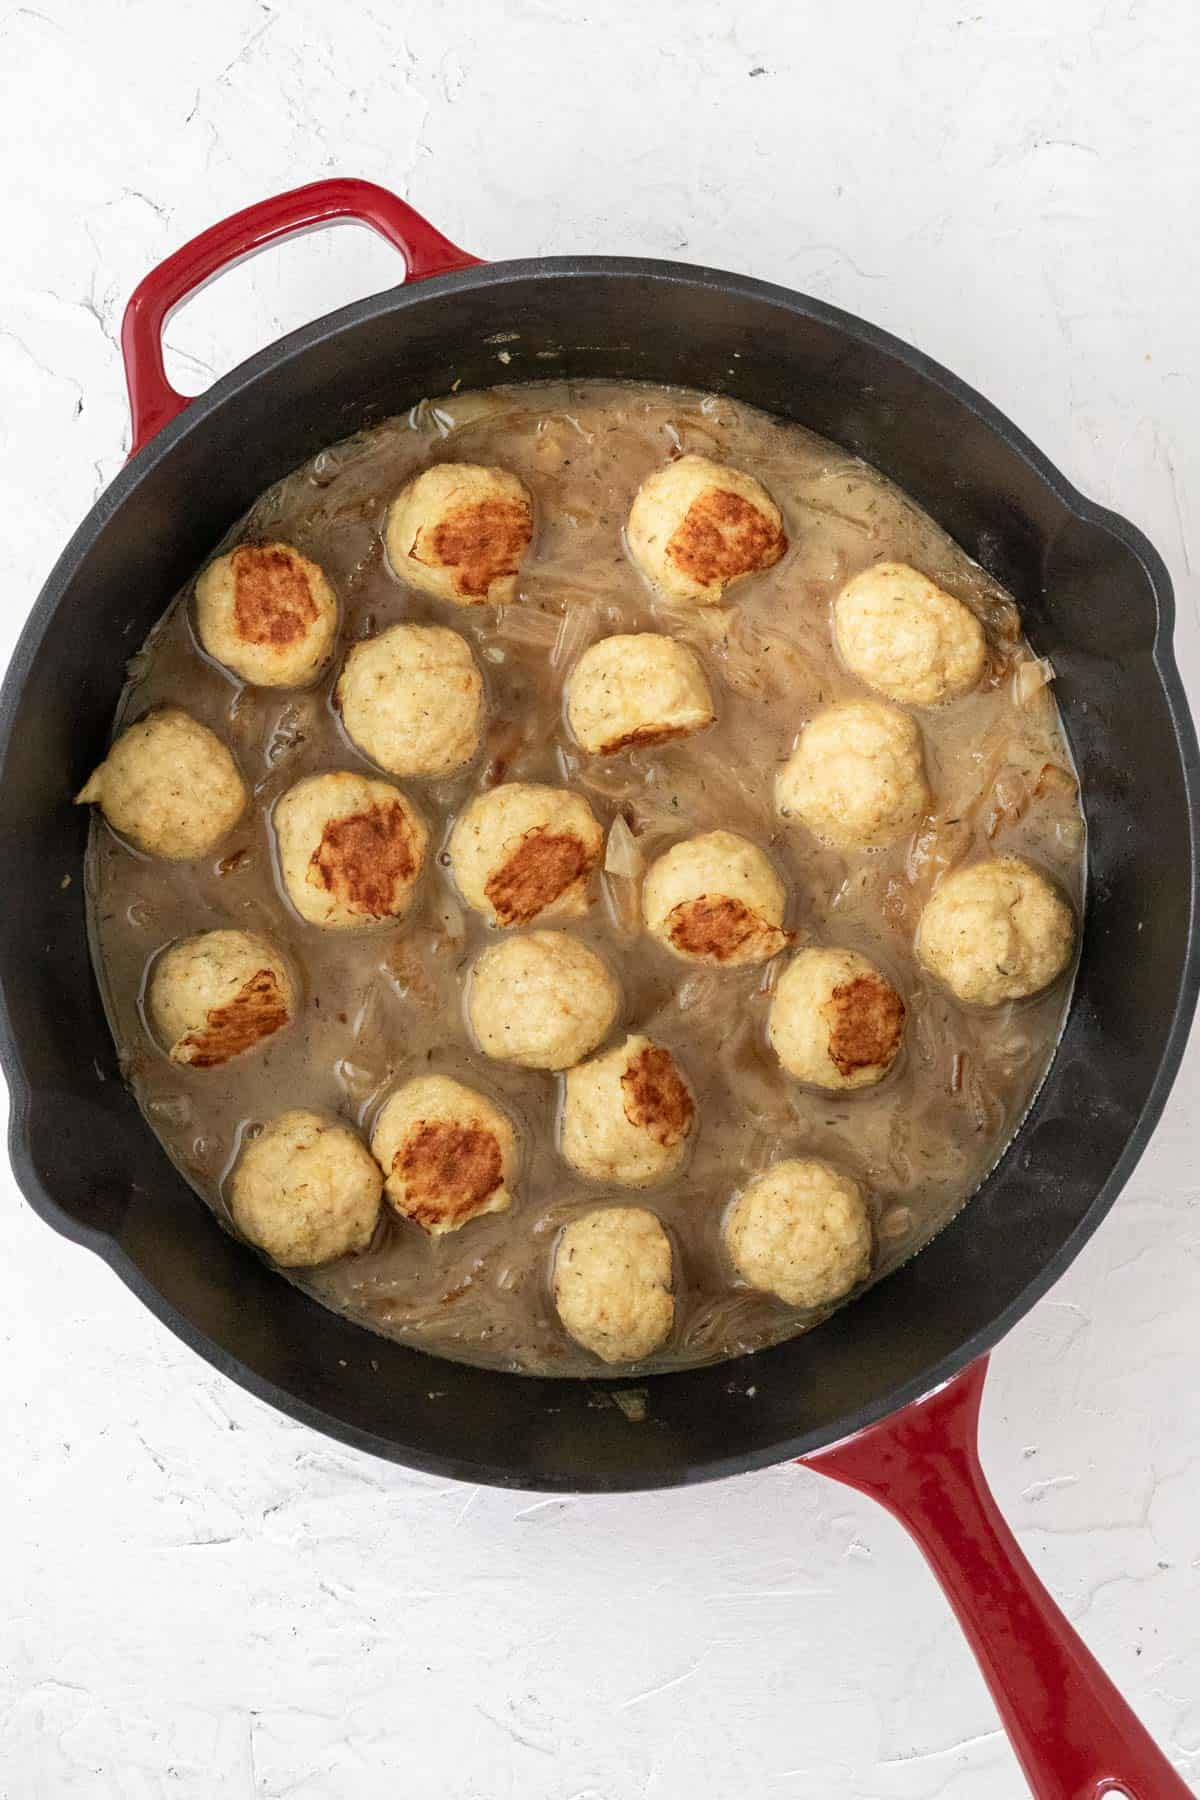 Baked chicken meatballs added to the skillet with the caramelized onions and chicken broth.